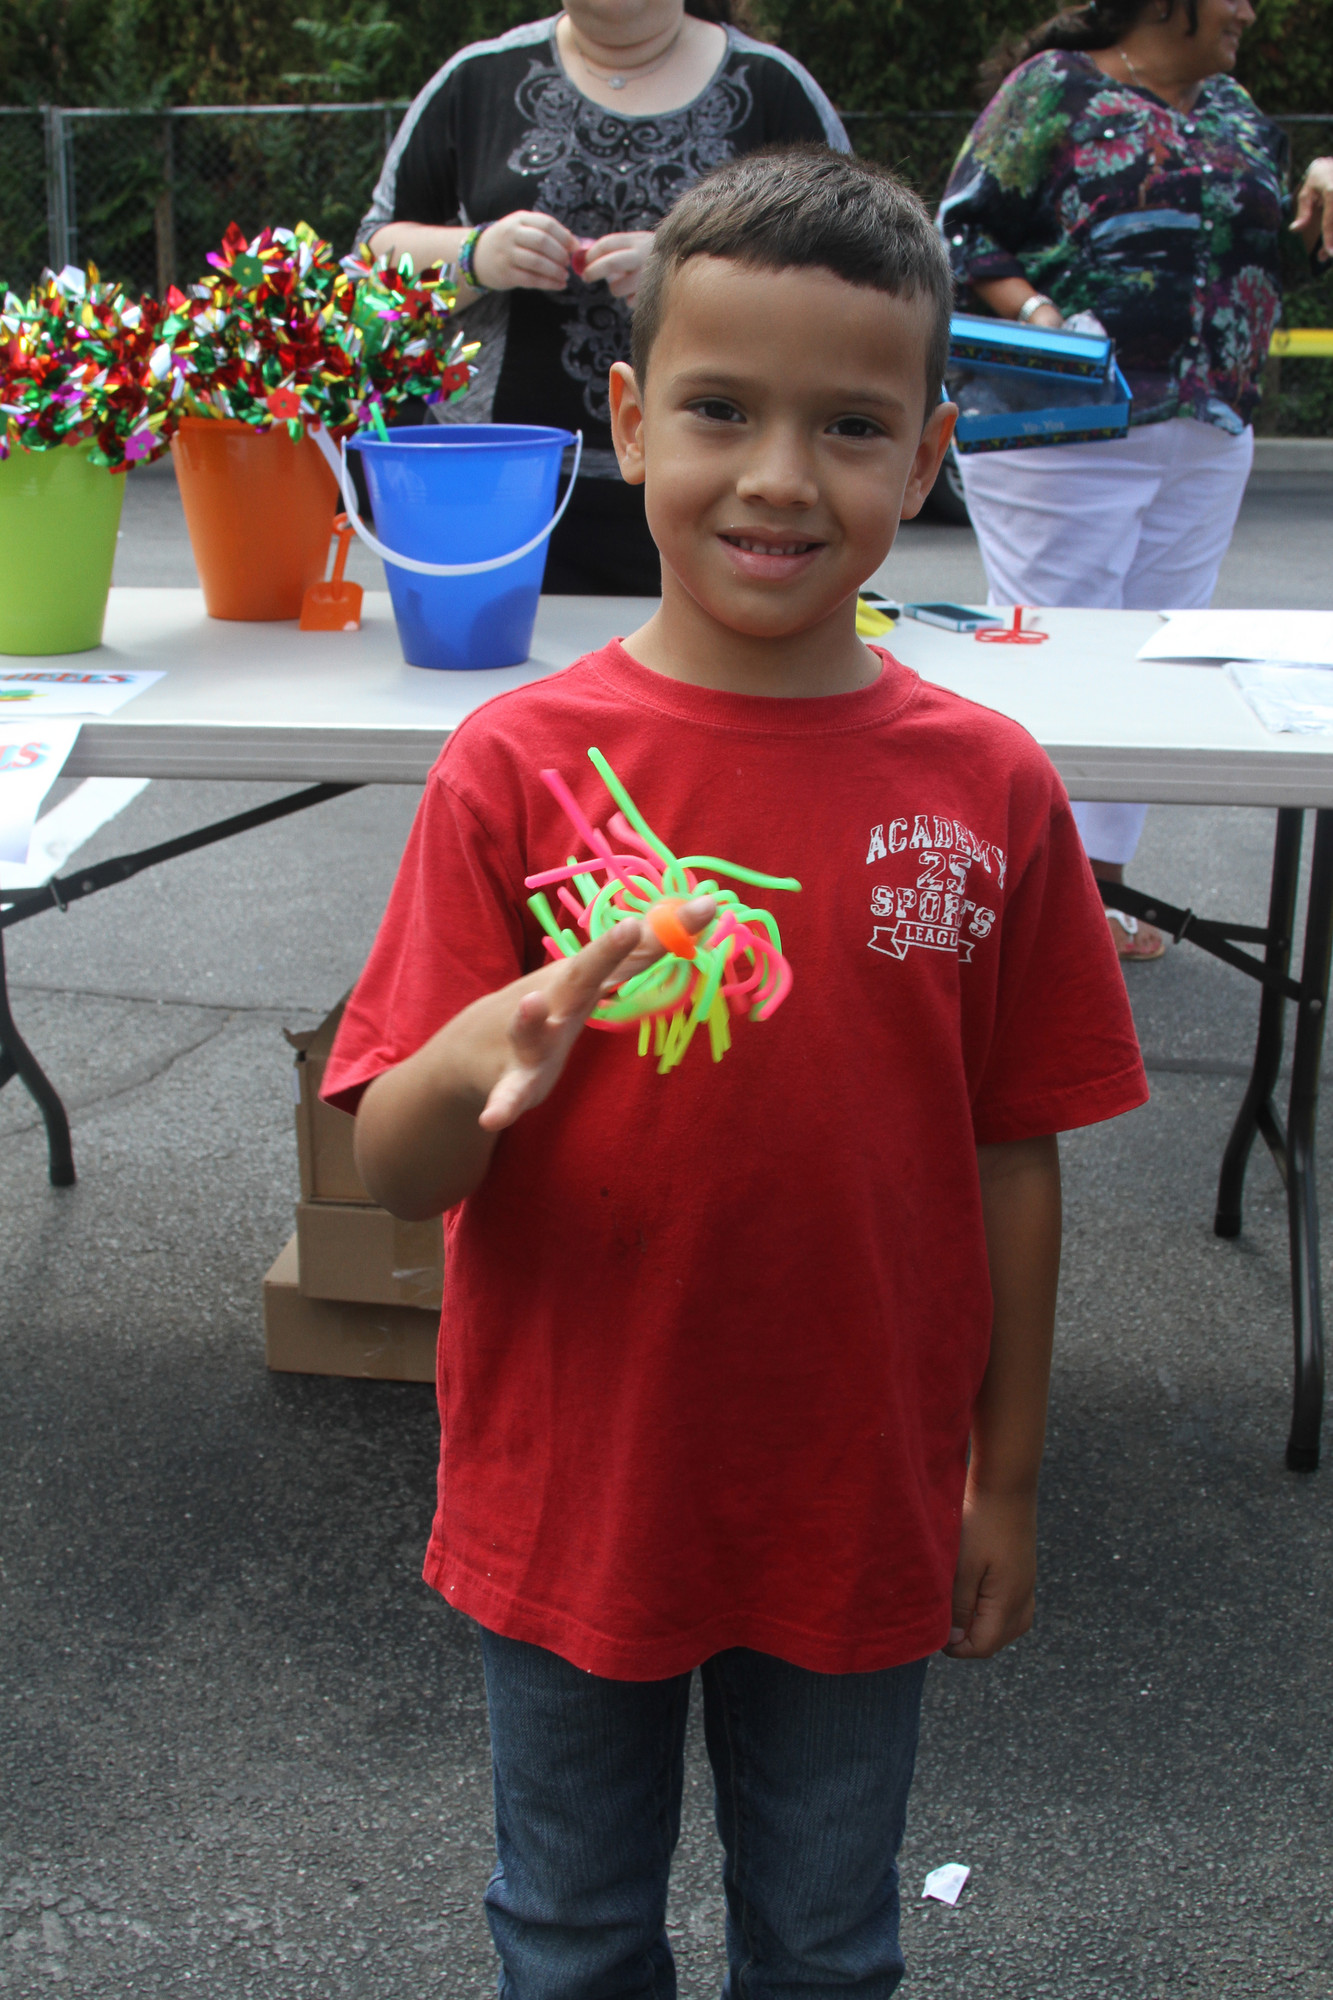 Joel Oliva, 5,showed off his rubber yo-yo he got at the PPL party.